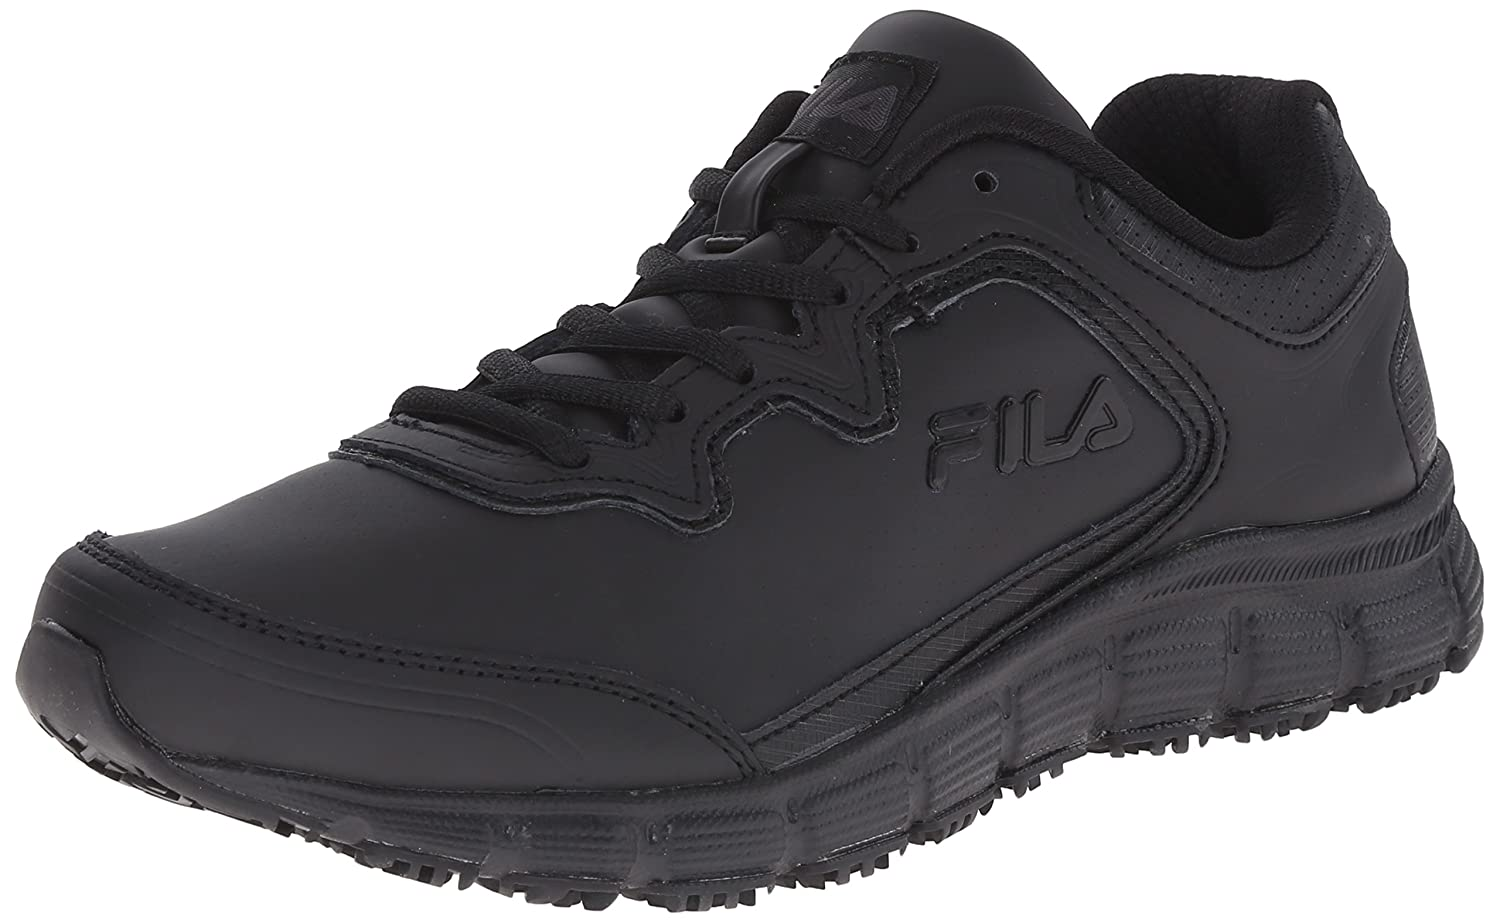 Fila Women's Memory Fresh Start Slip Resistant Work Shoe B0107M1PXG 9 B(M) US|Black/Black/Black